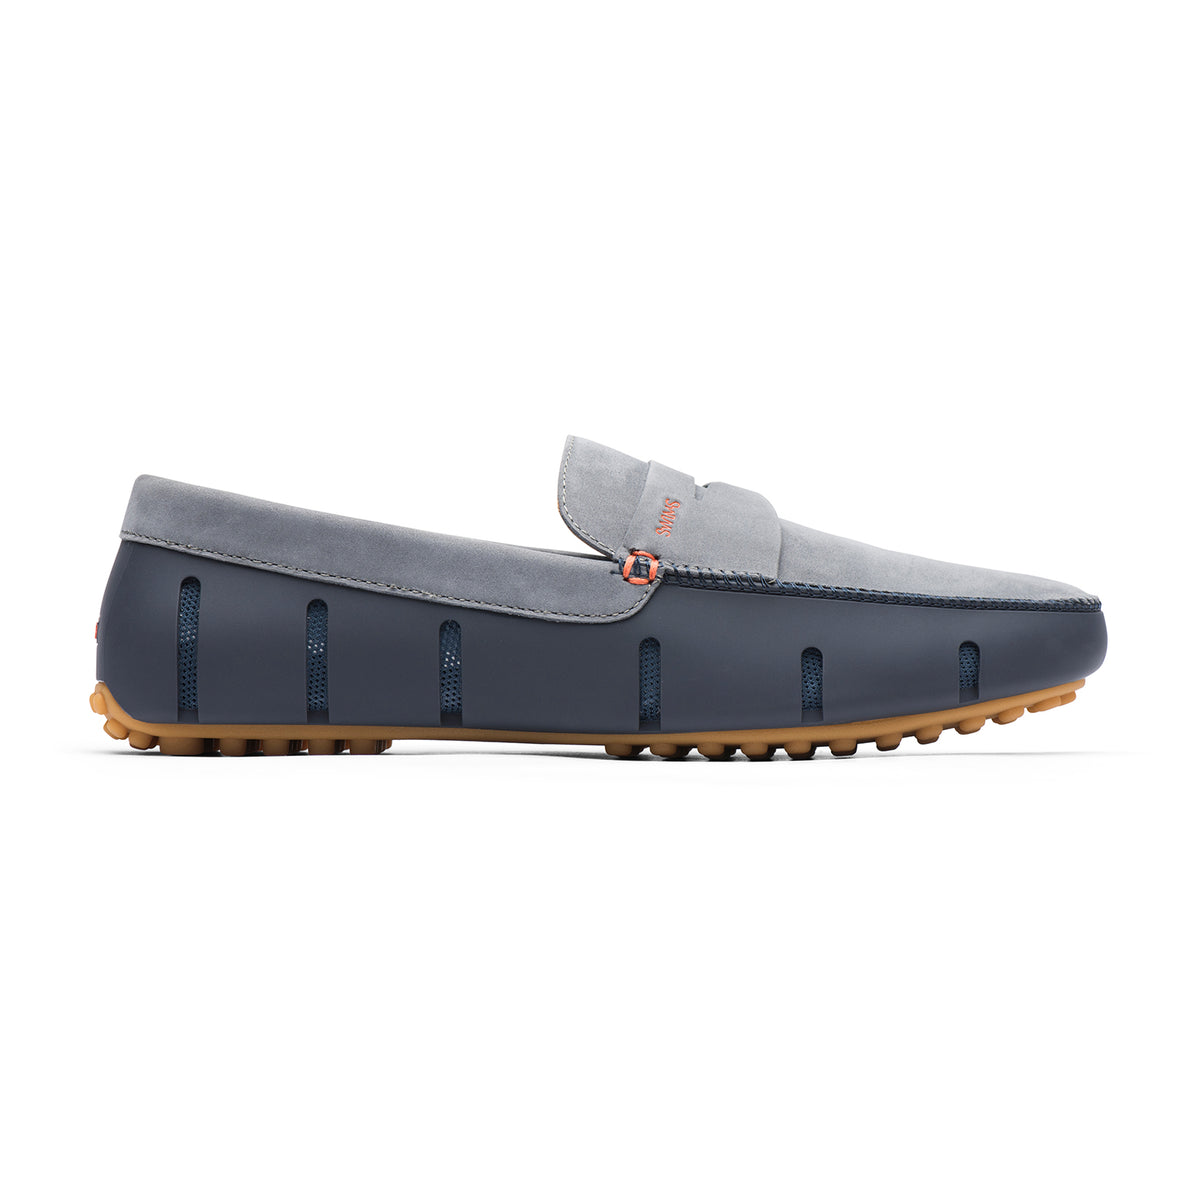 Penny Lux Loafer Driver Nubuck - background::white,variant::Navy/Gray/Gum